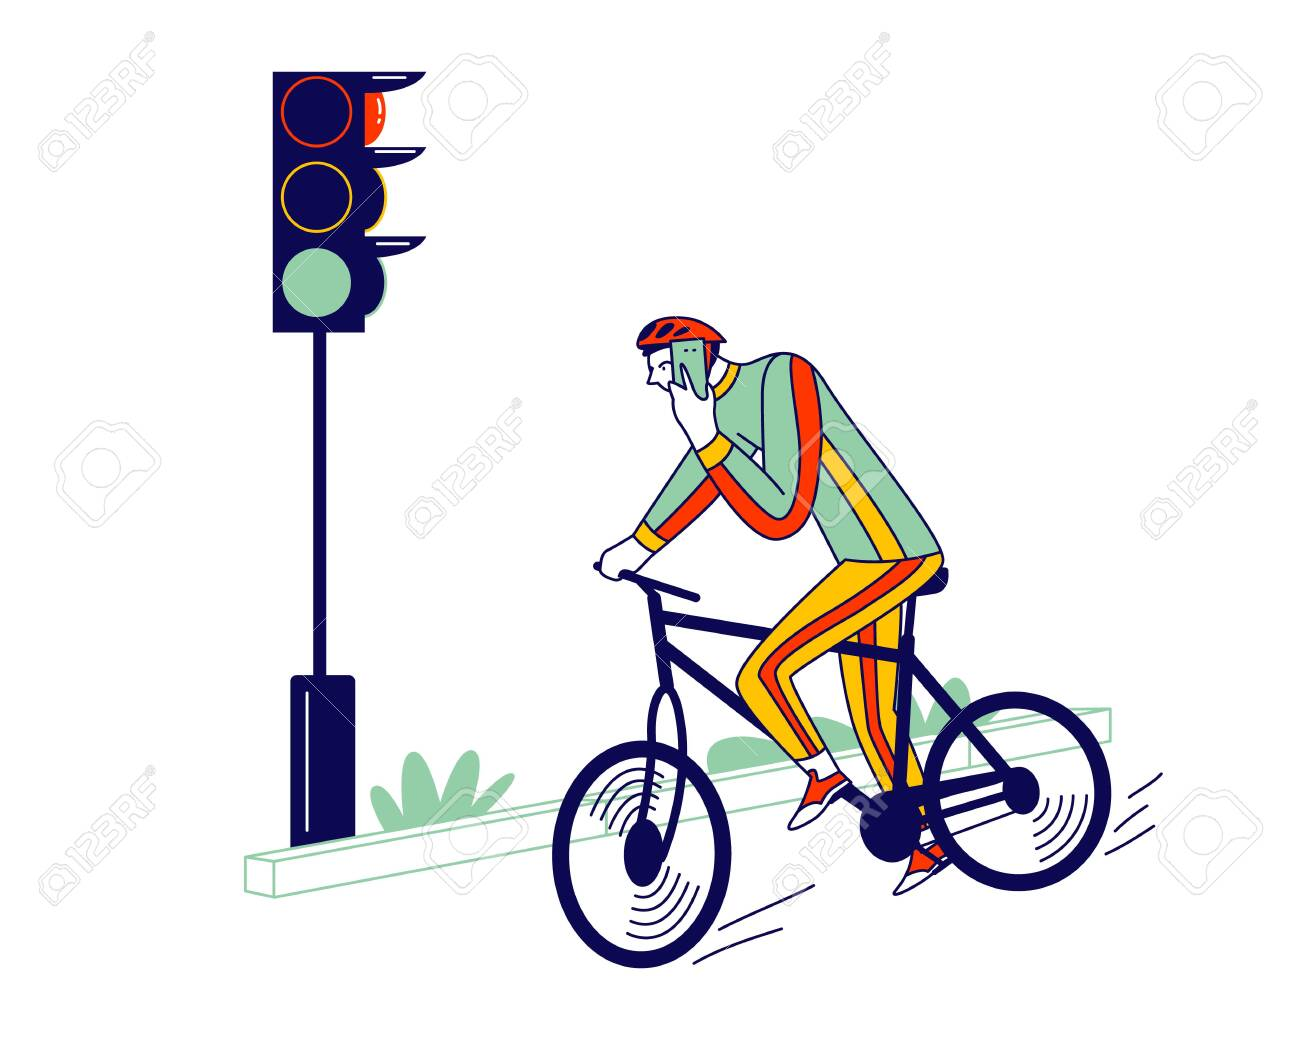 Careless Biker Male Character Riding Bicycle on City Road Speaking by Smartphone Ignoring Traffic Light. Human Carelessness Concept, Danger on Road, Harmful Gadget Impact. Linear Vector Illustration - 148200071